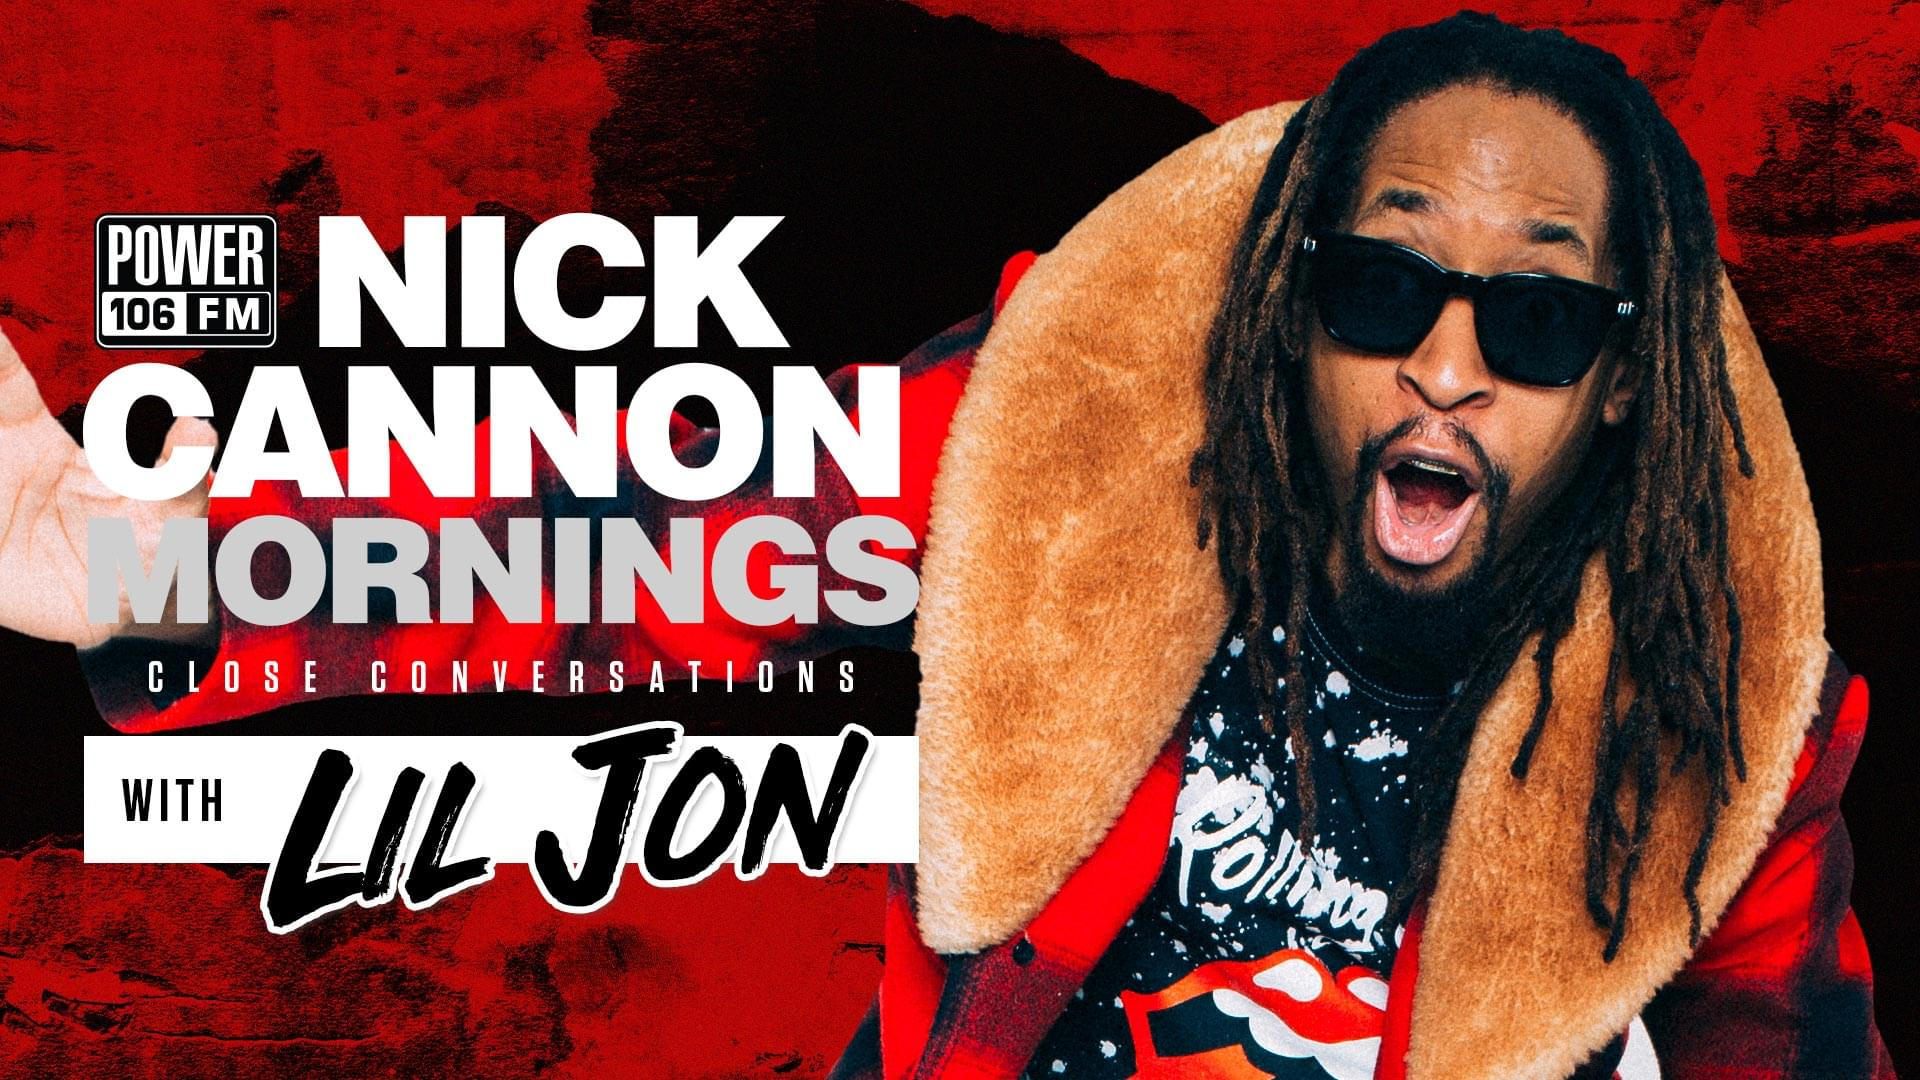 Lil Jon Discusses Sex Beat, Potential Verzuz w/ 3-6-Mafia + Bone Thugs, and Top 5 Influences